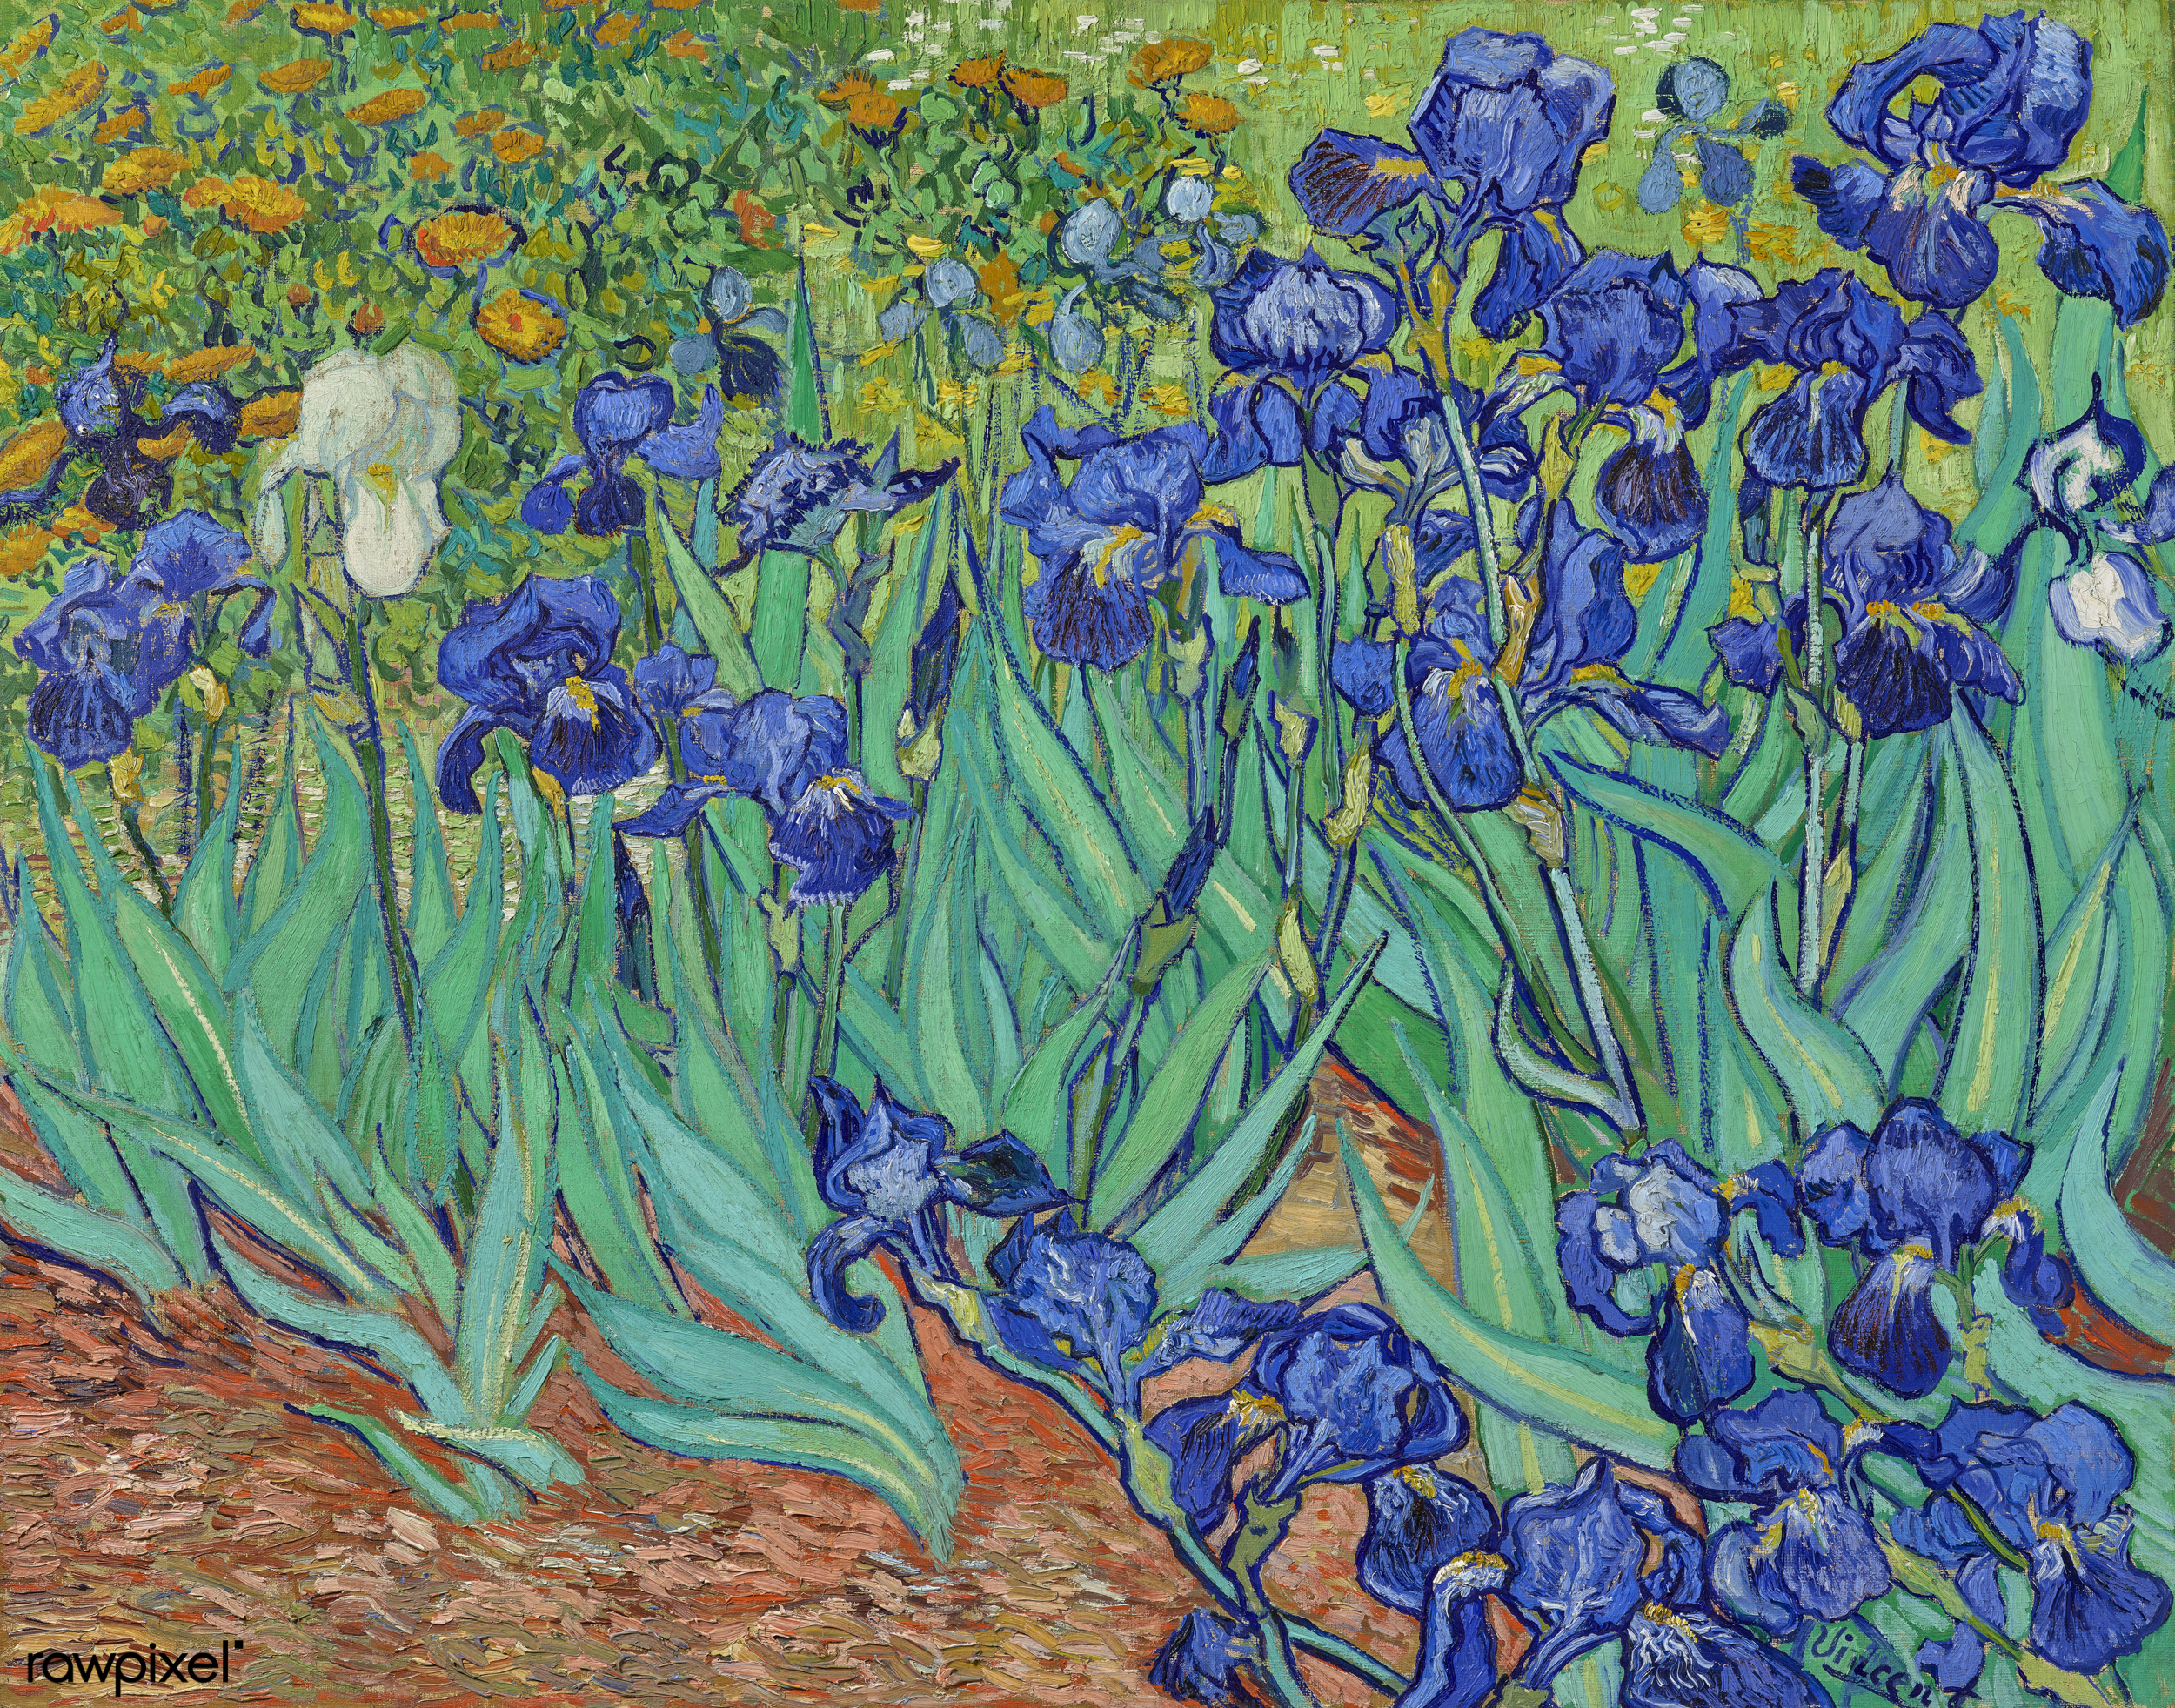 File:Vincent van Gogh's famous painting, digitally enhanced by rawpixel-com  2.jpg - Wikimedia Commons